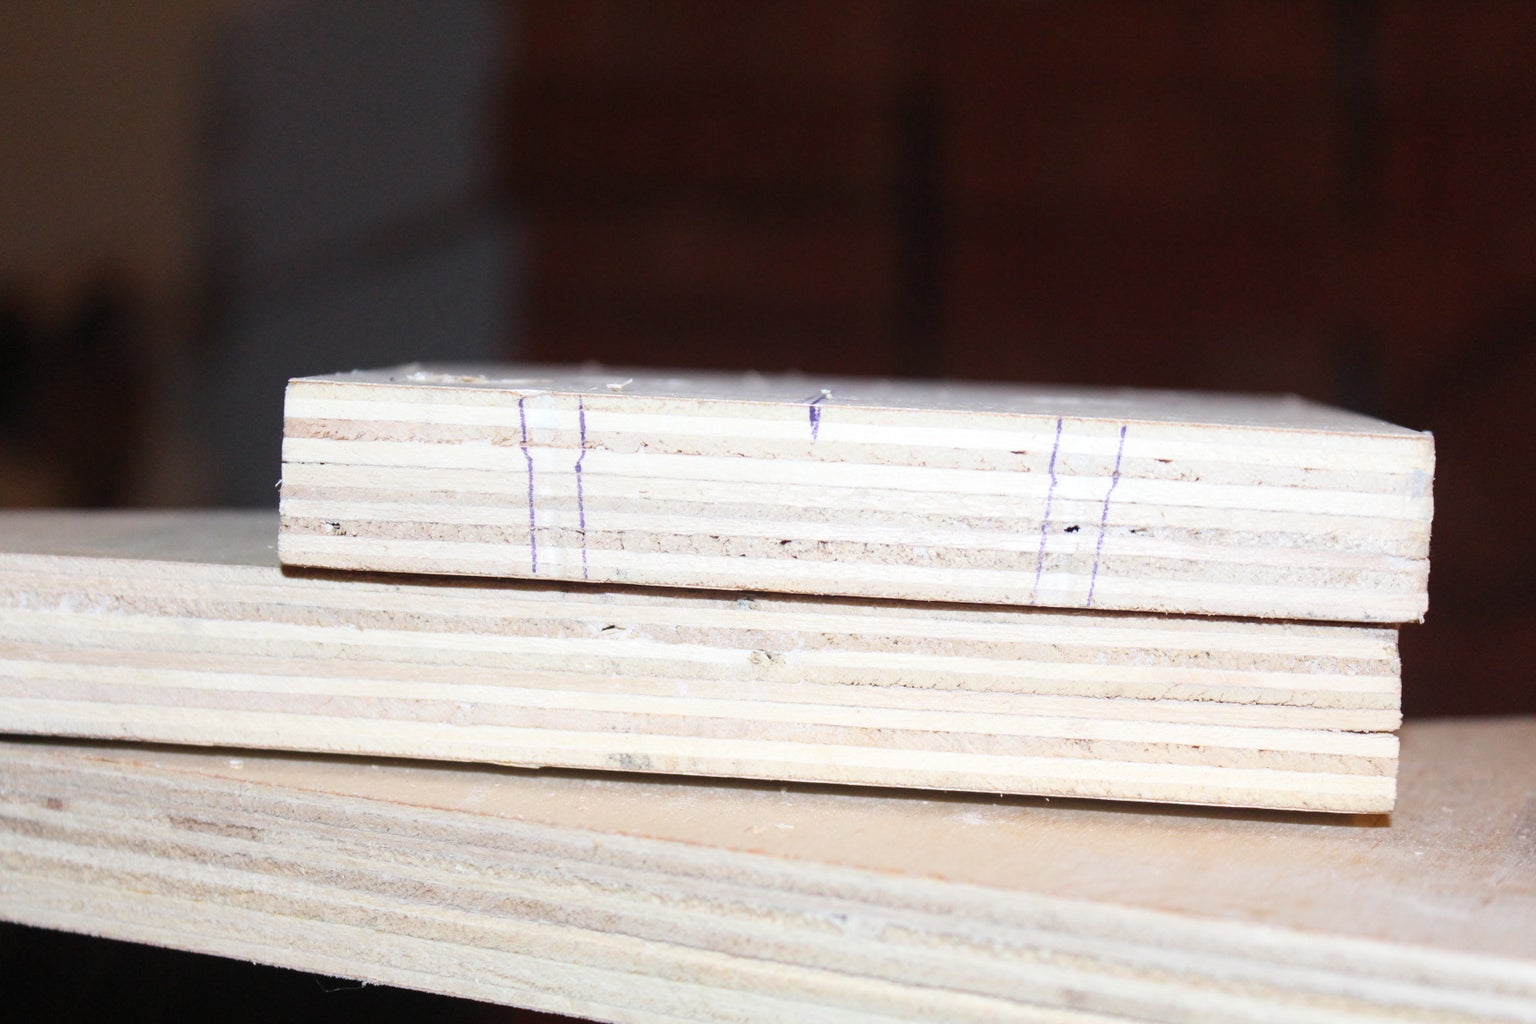 Cutting the Plywood and Woodwork